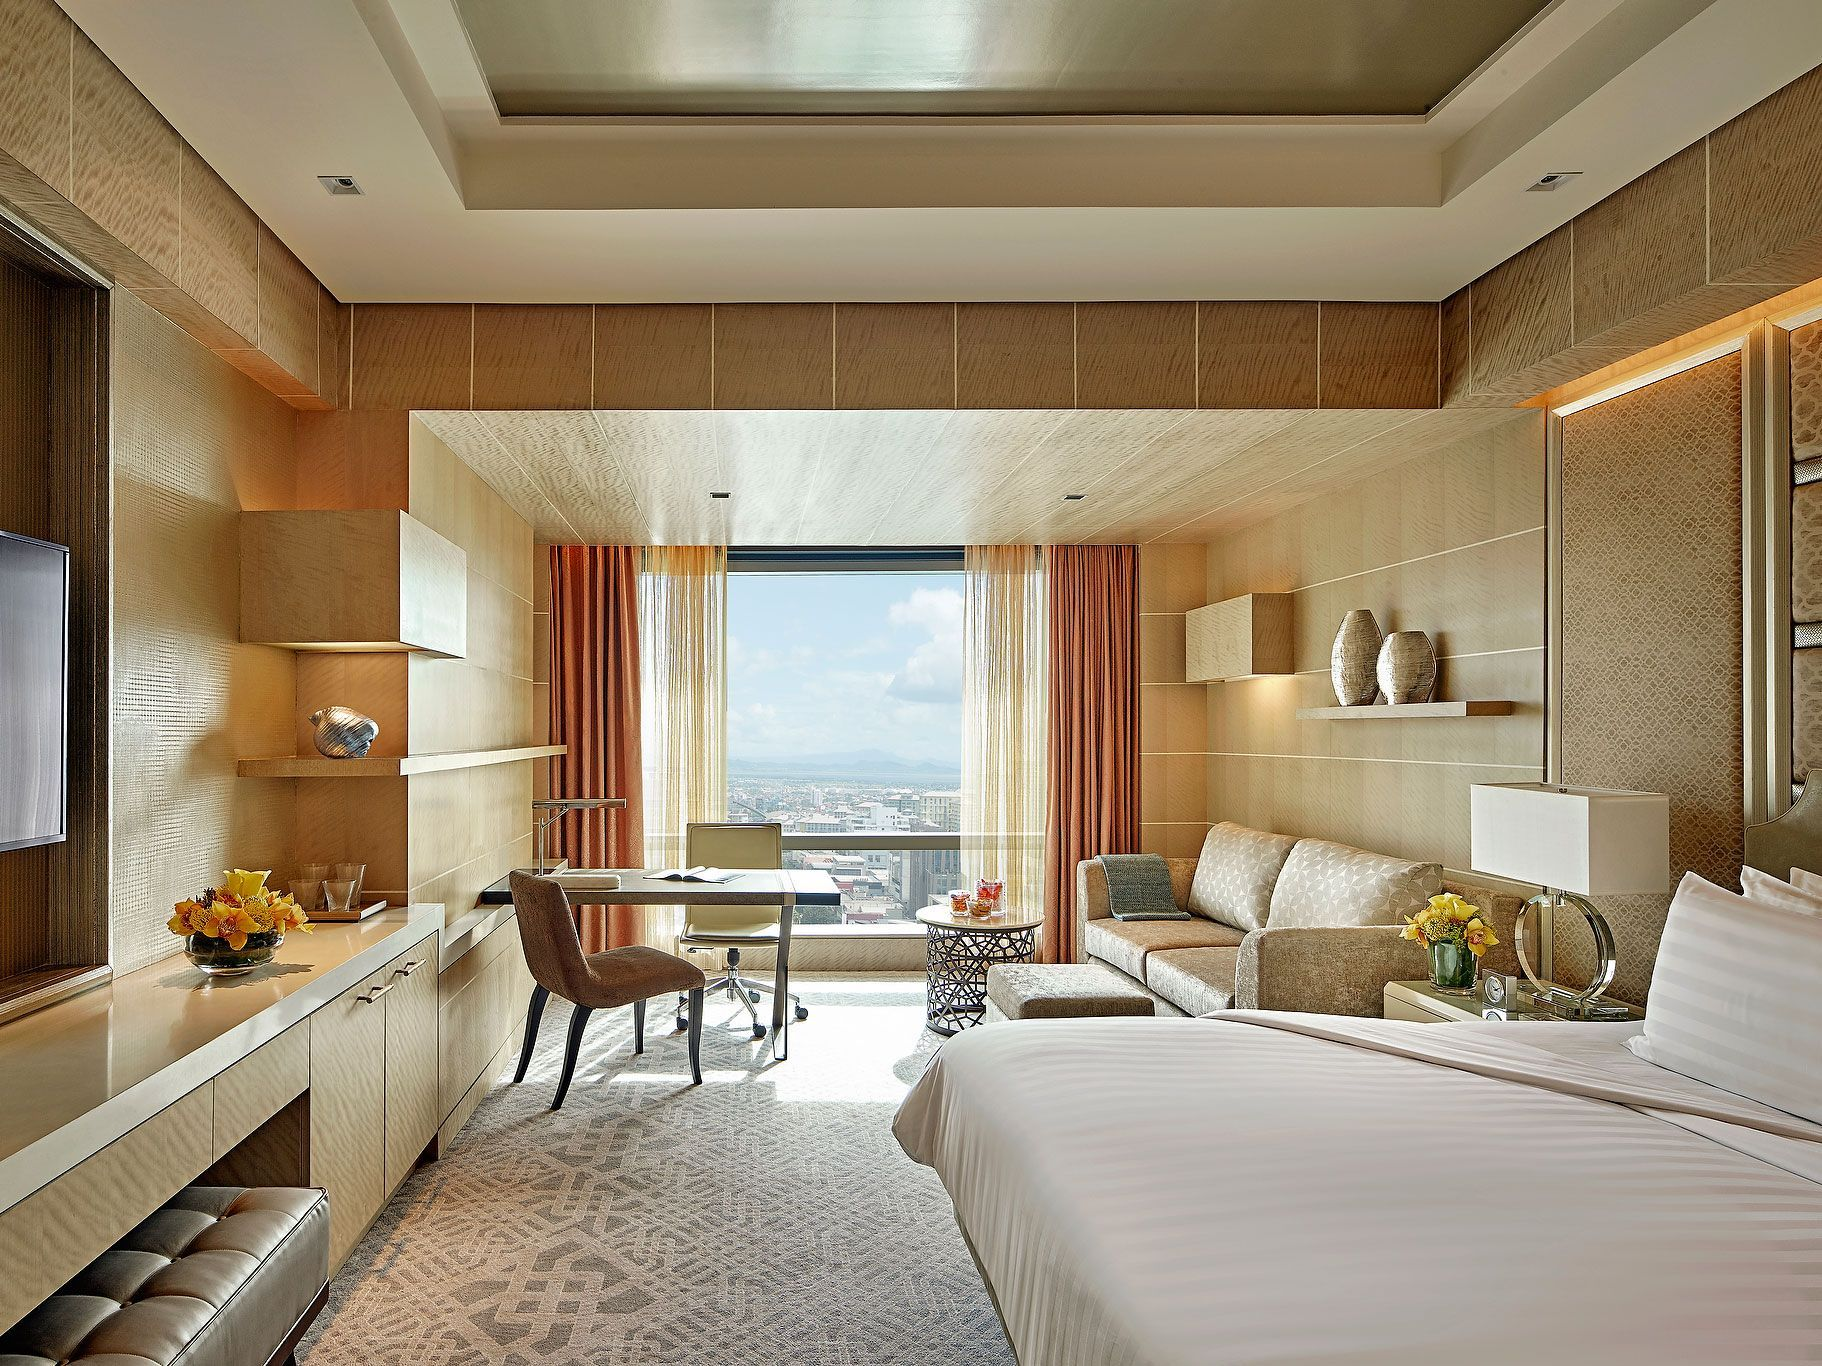 Shangri-La at The Fort: Have A Cosy Little Christmas Staycation In The City